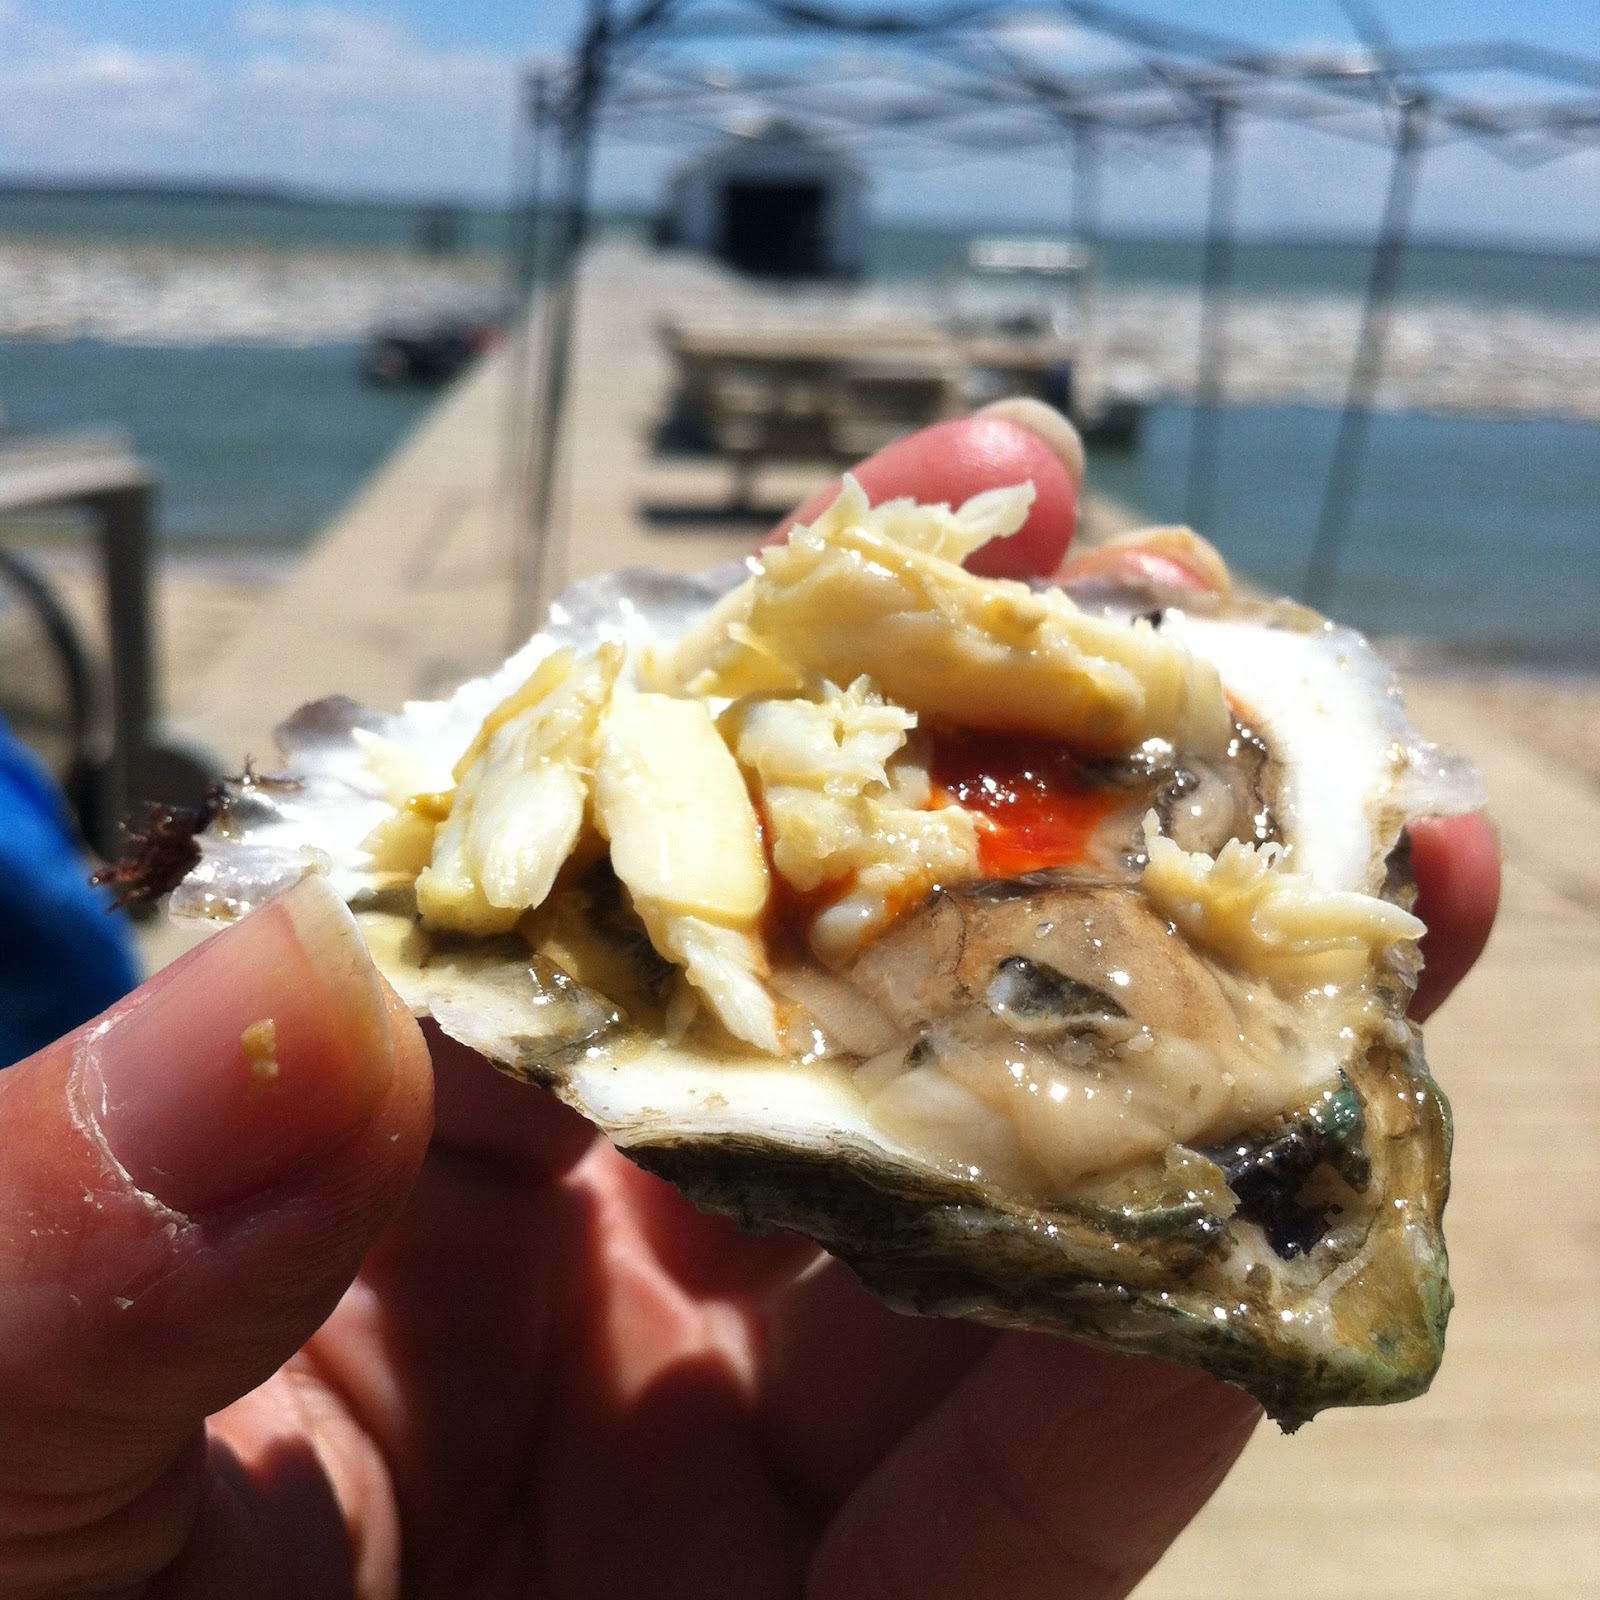 florida girl in dc Visiting Choptank Sweets Oyster Farm & Eating Oysters